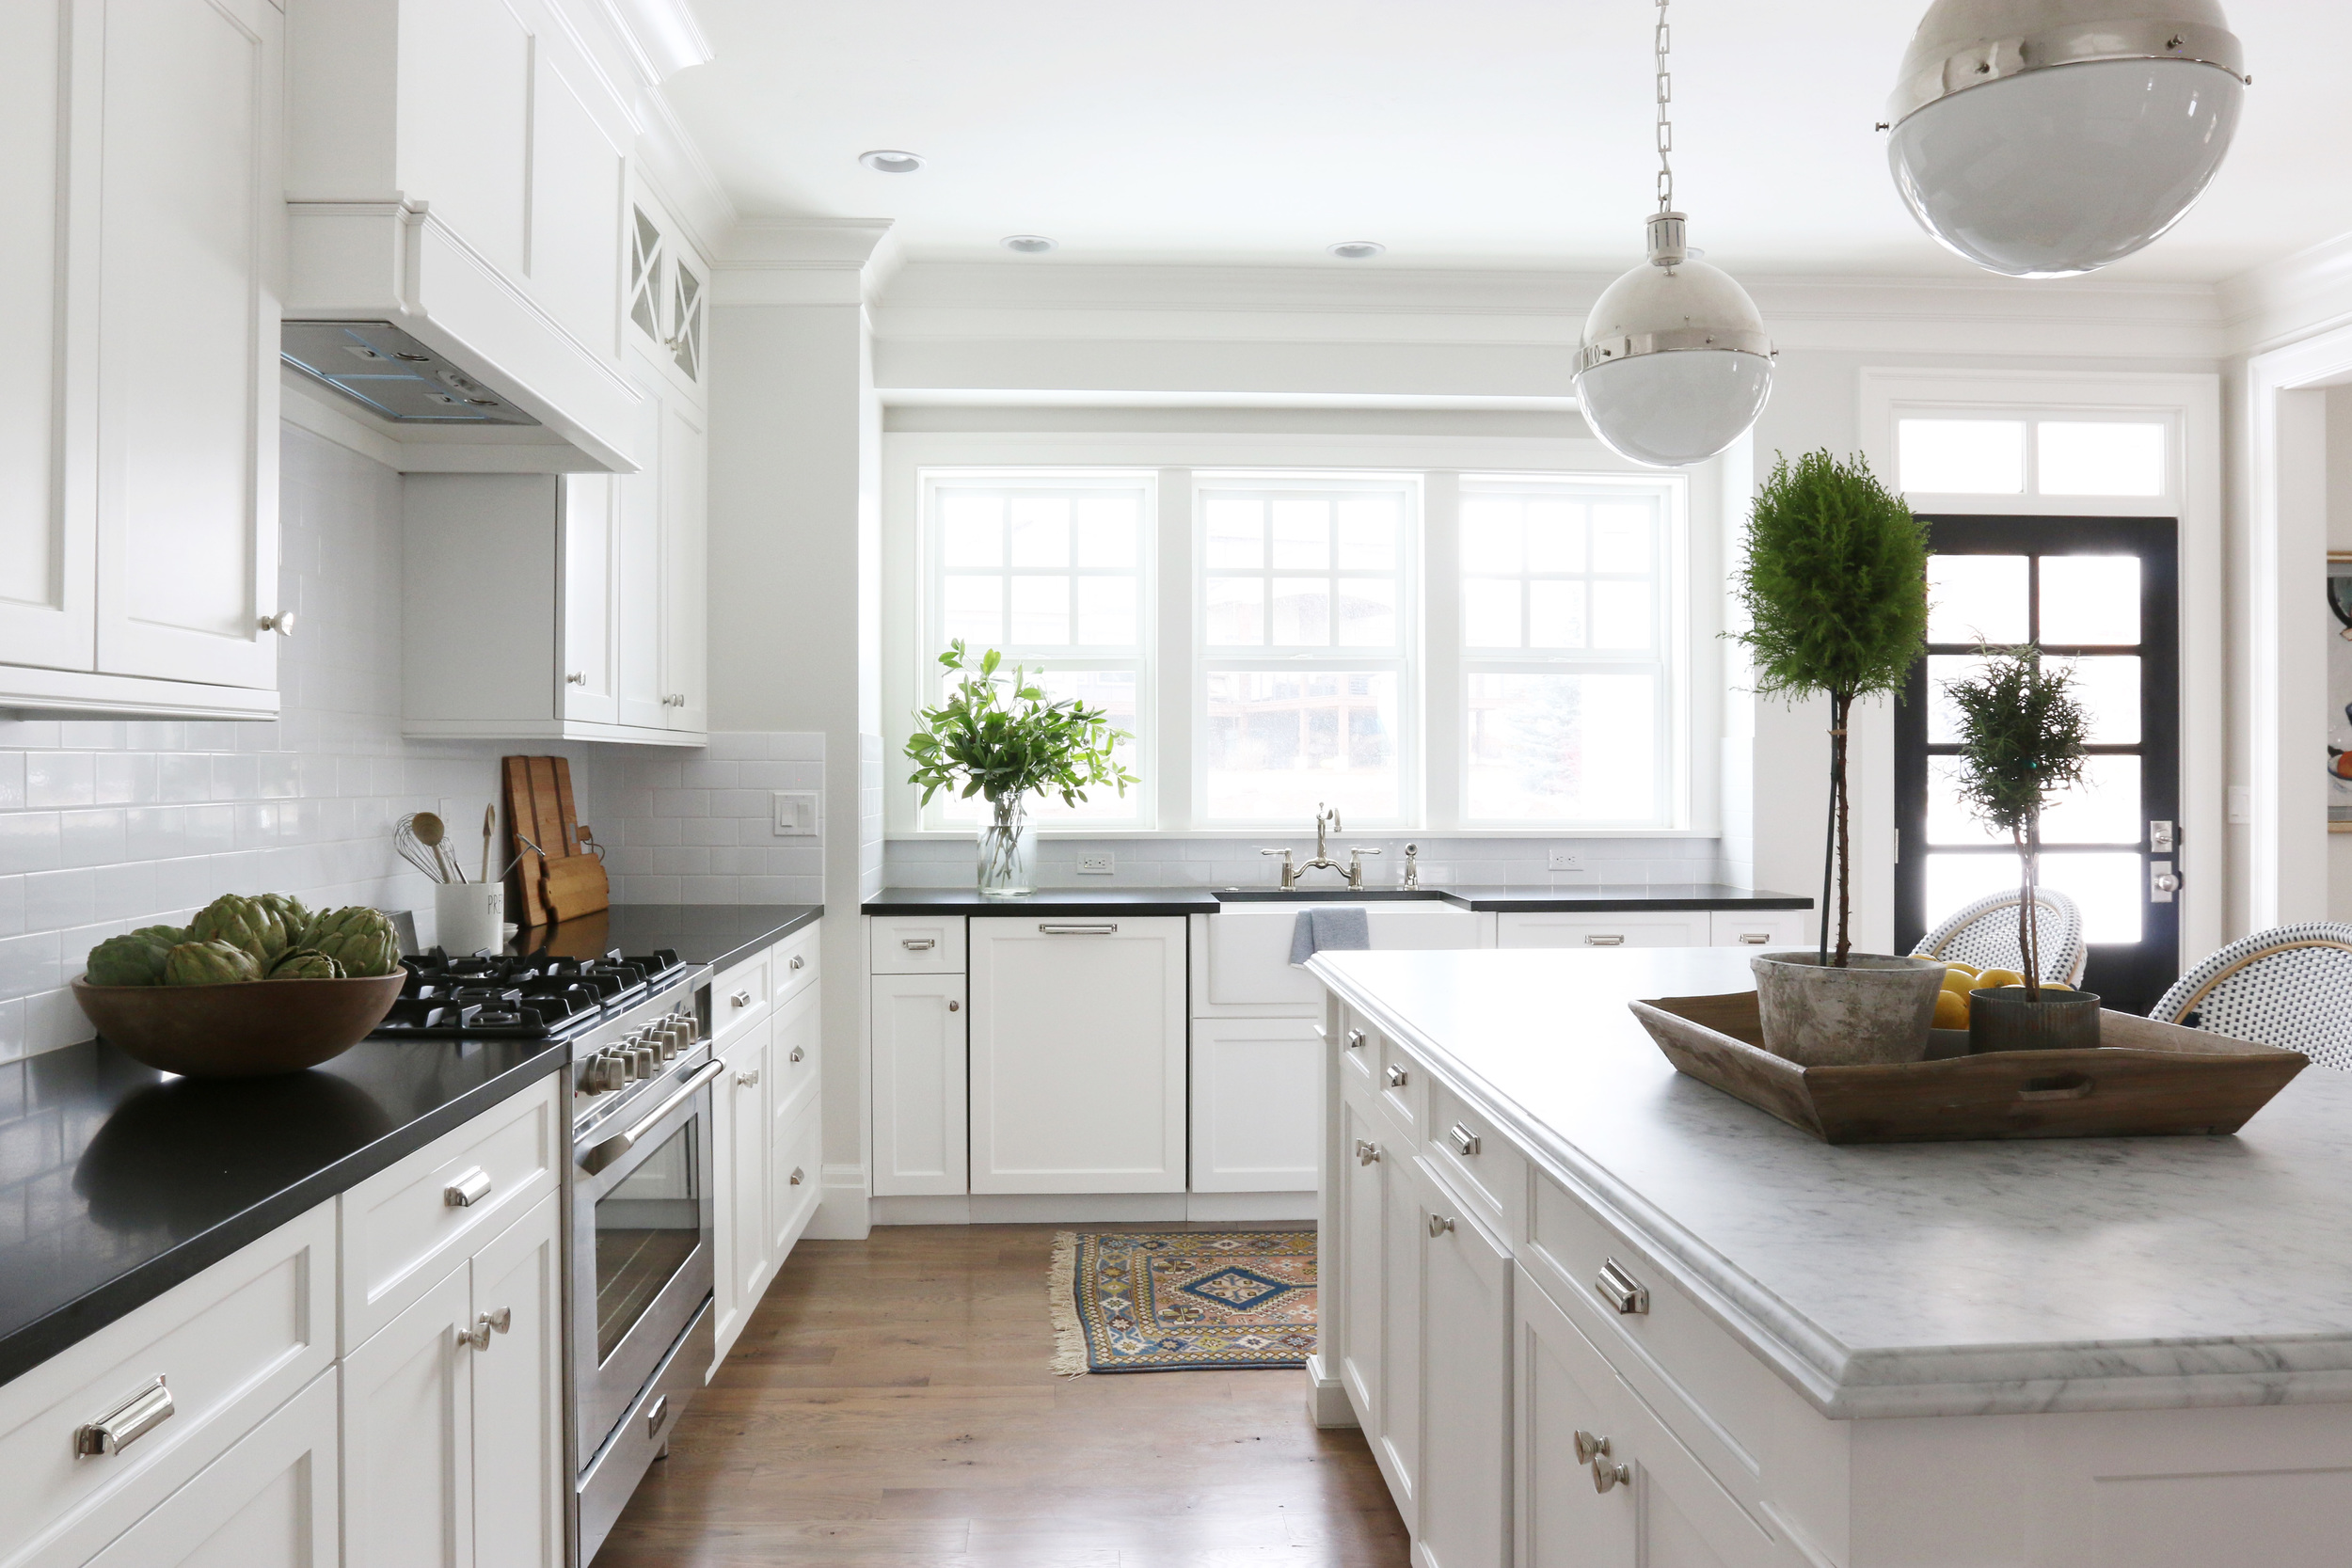 Classic Kitchen with farmhouse sink || Studio McGee